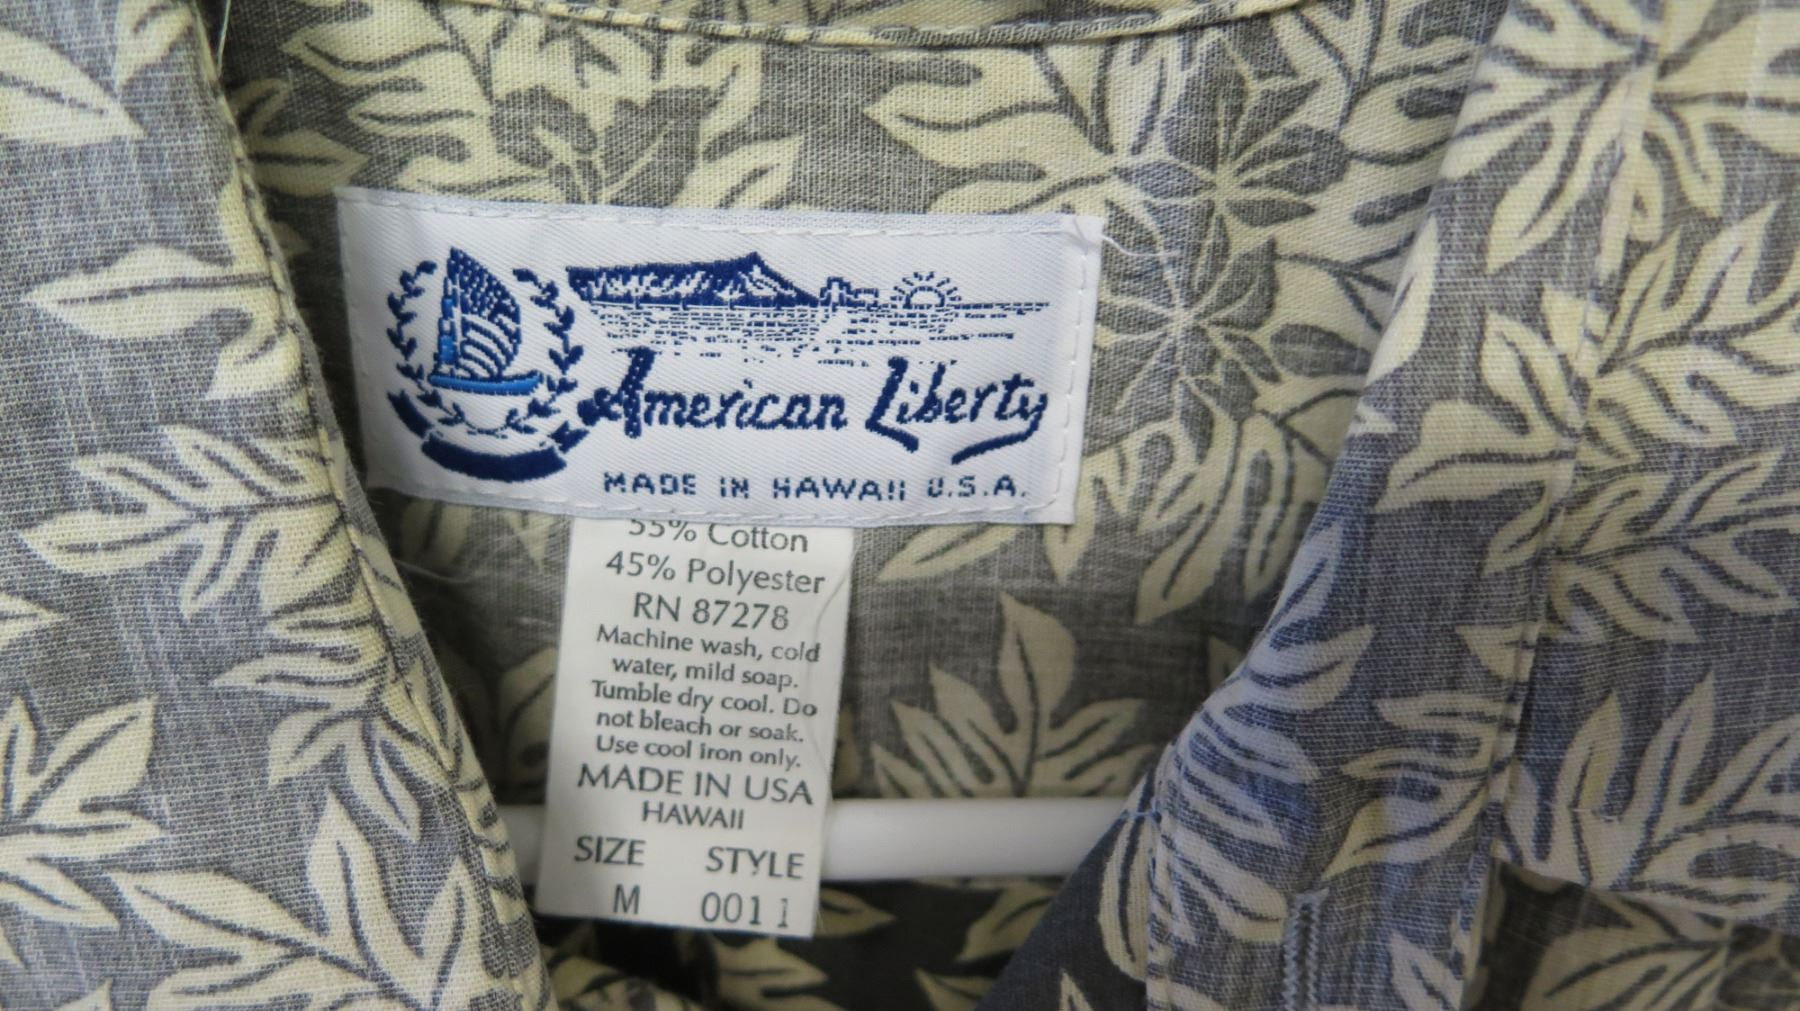 aad1200a ... Image 2 : Vintage Aloha Shirt - American Liberty Hawaii, Gray w/ Tan  Leaves ...